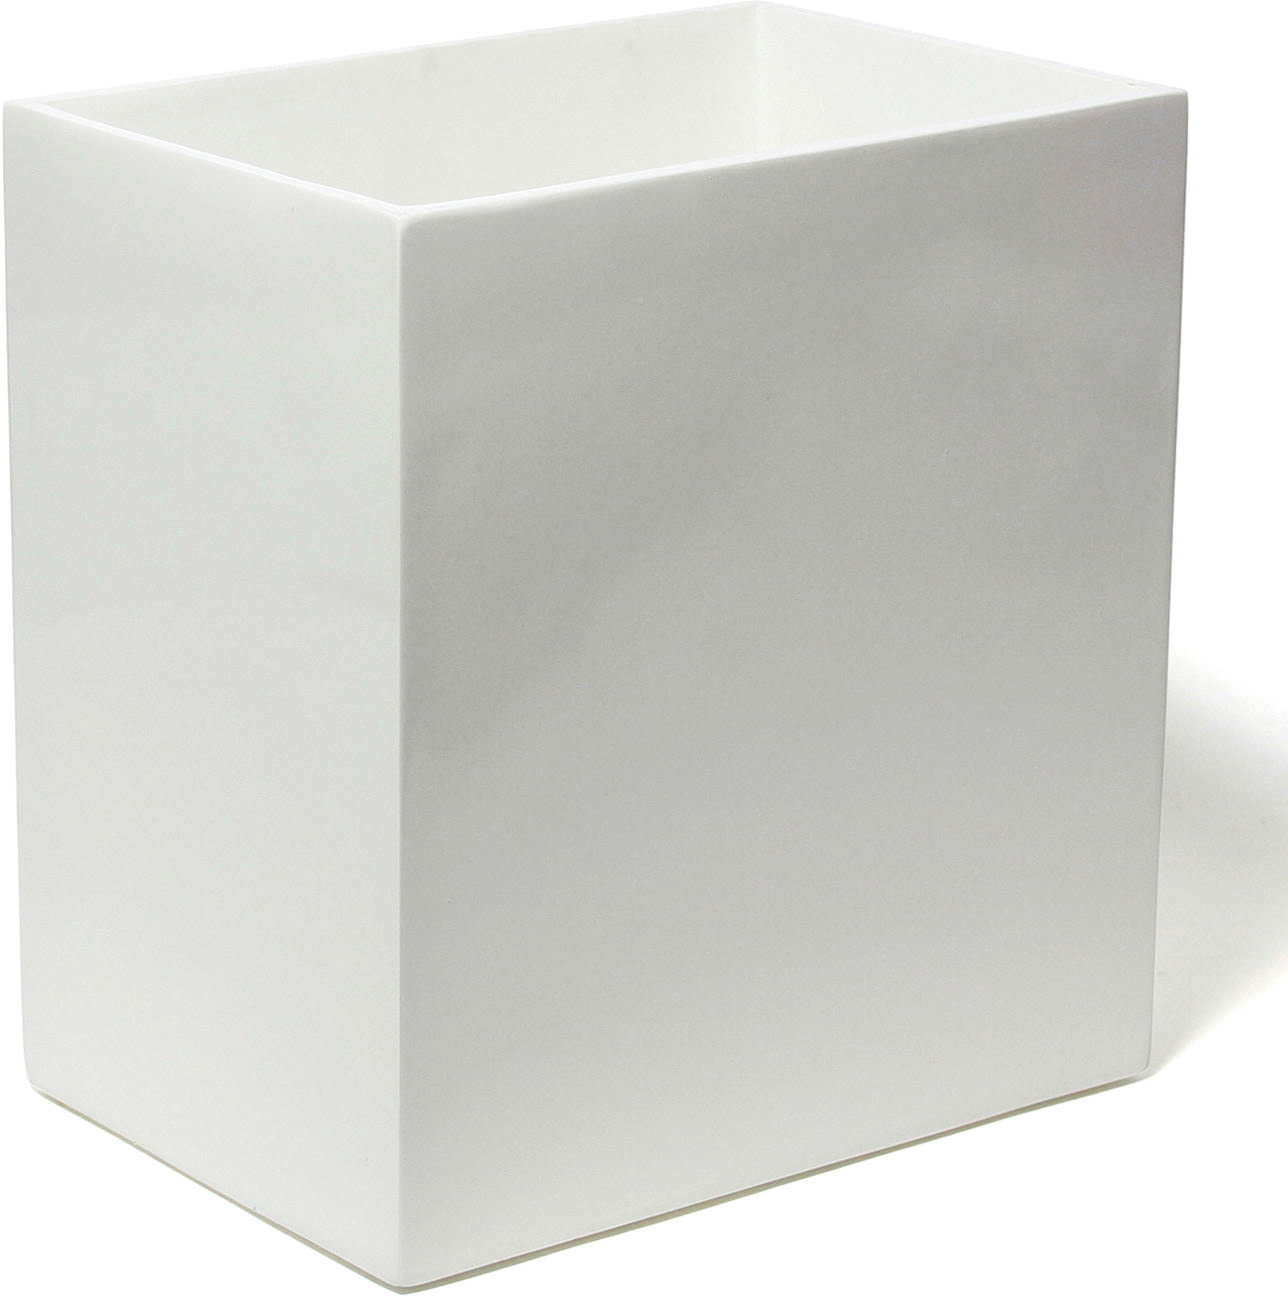 Lacquer Wastebasket